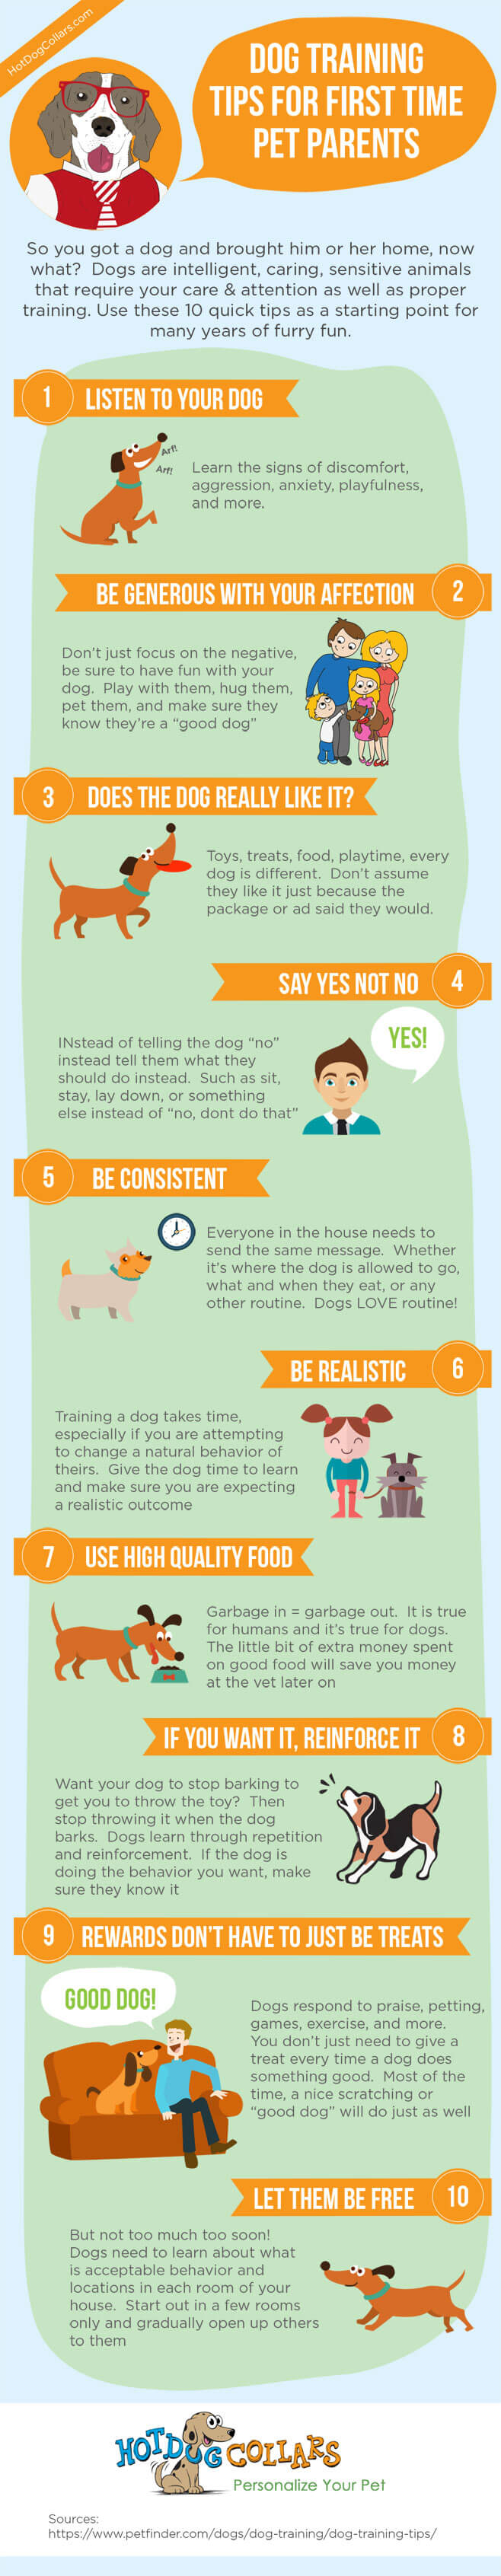 Just got a dog? need some help? Here are some quick tips to get you and your new family member off on the right paw